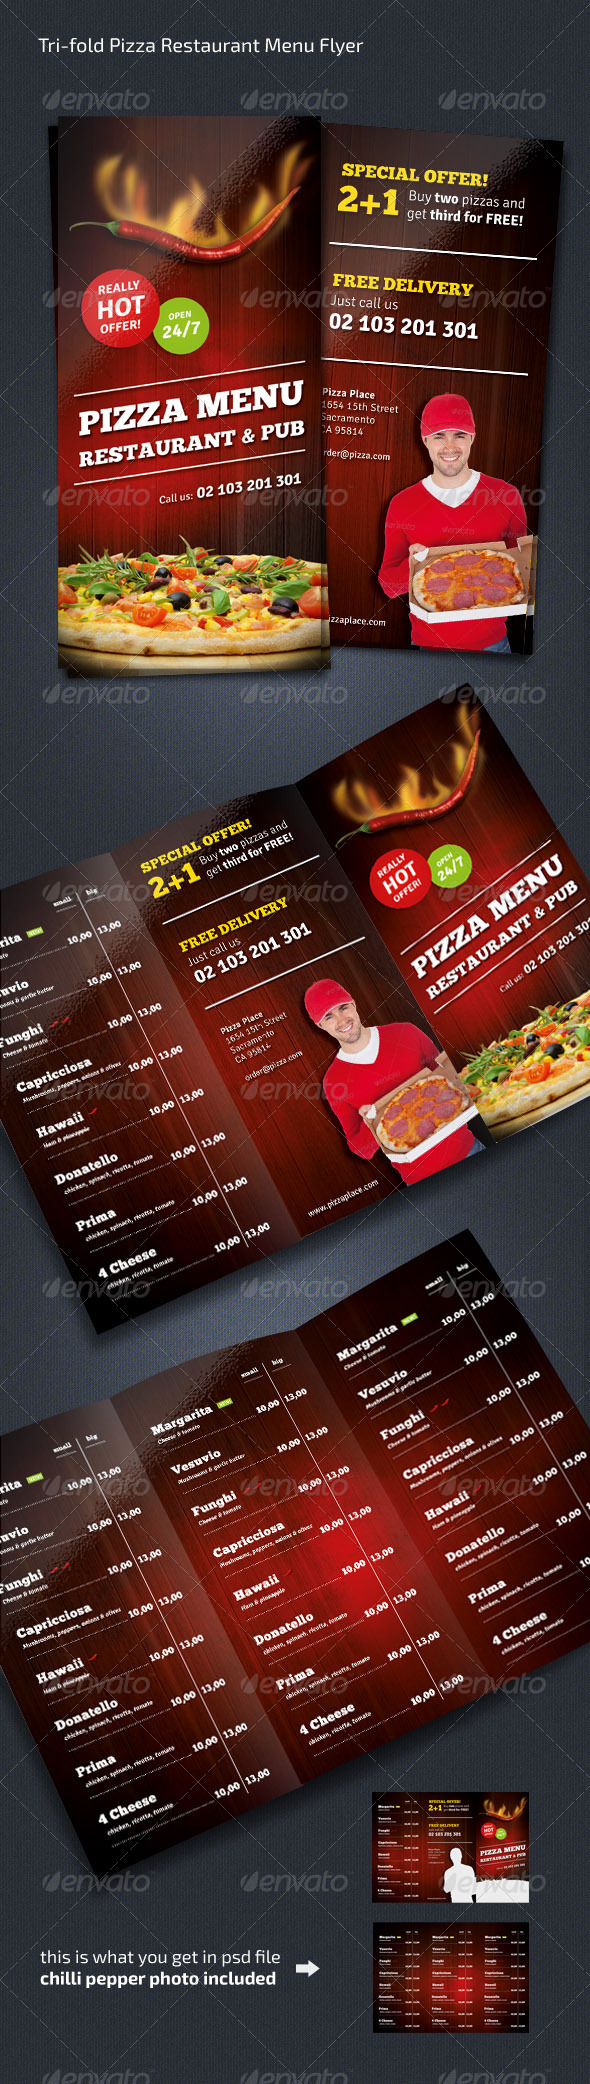 pizza sale flyer template - pizza restaurant menu flyer trifold by out00 graphicriver